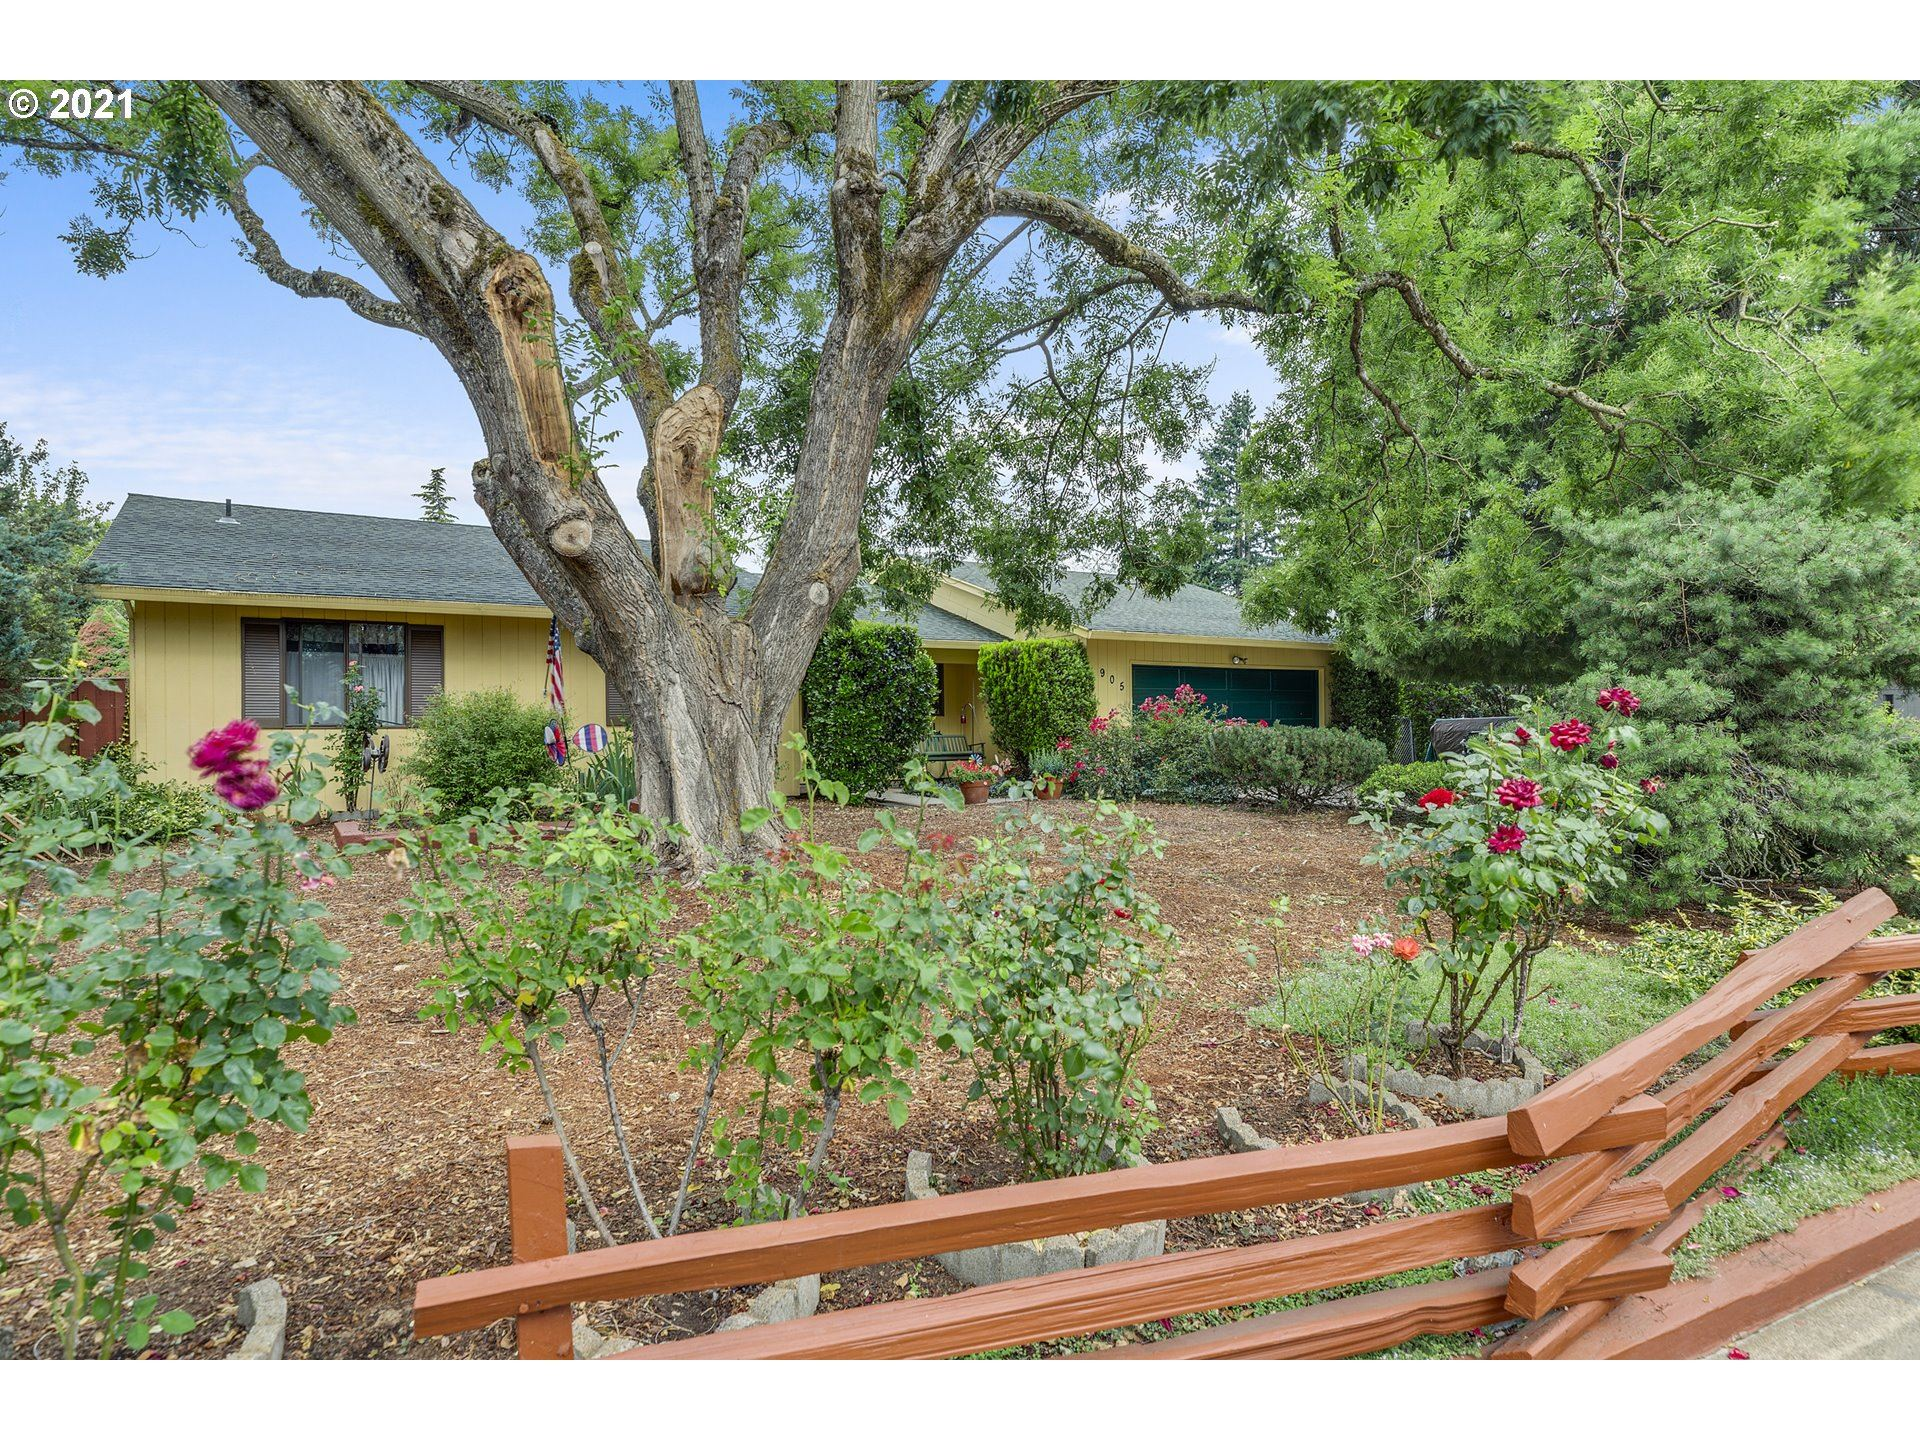 905 S GRANT ST, Canby, OR 97013 - MLS#: 21112849